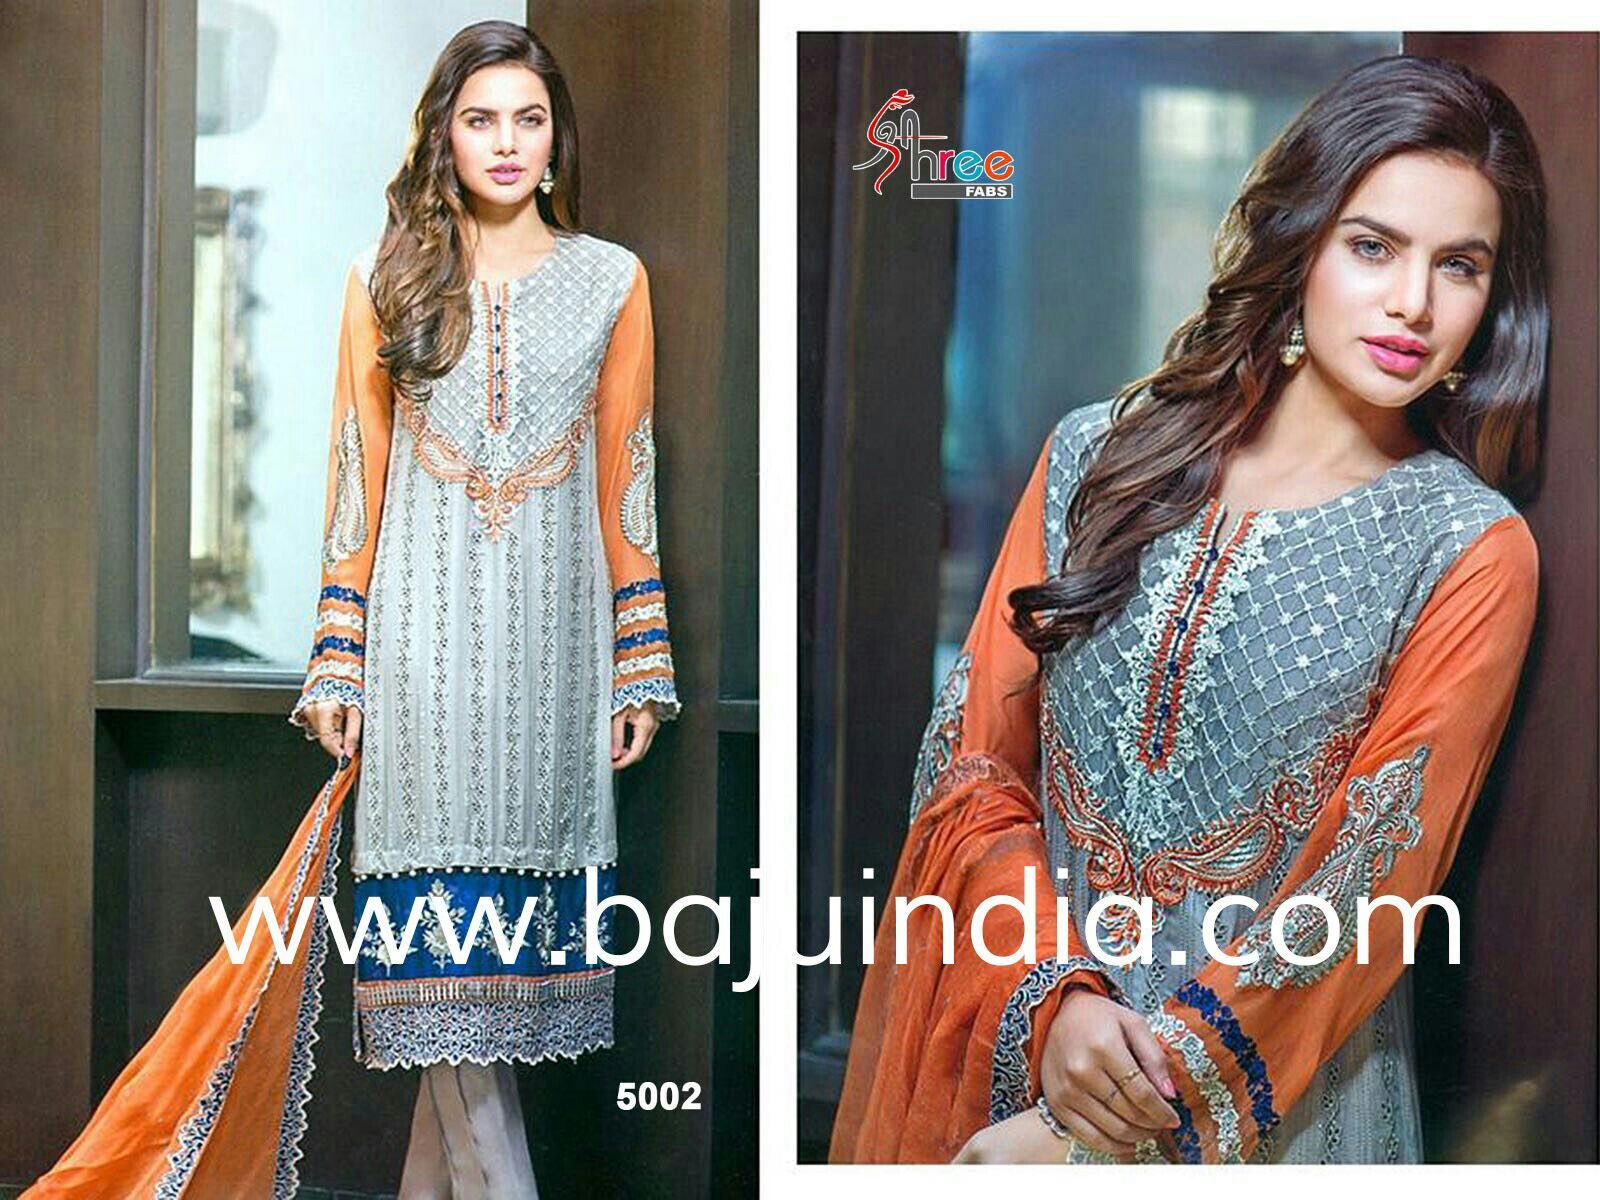 Baju India Muslim - Baju India Modern - Baju Khas India - Baju Adat India - Sari India Terbaru - Sari India Muslim - Baju Kerajaan India - Baju Salwaar India – SHREE 5002